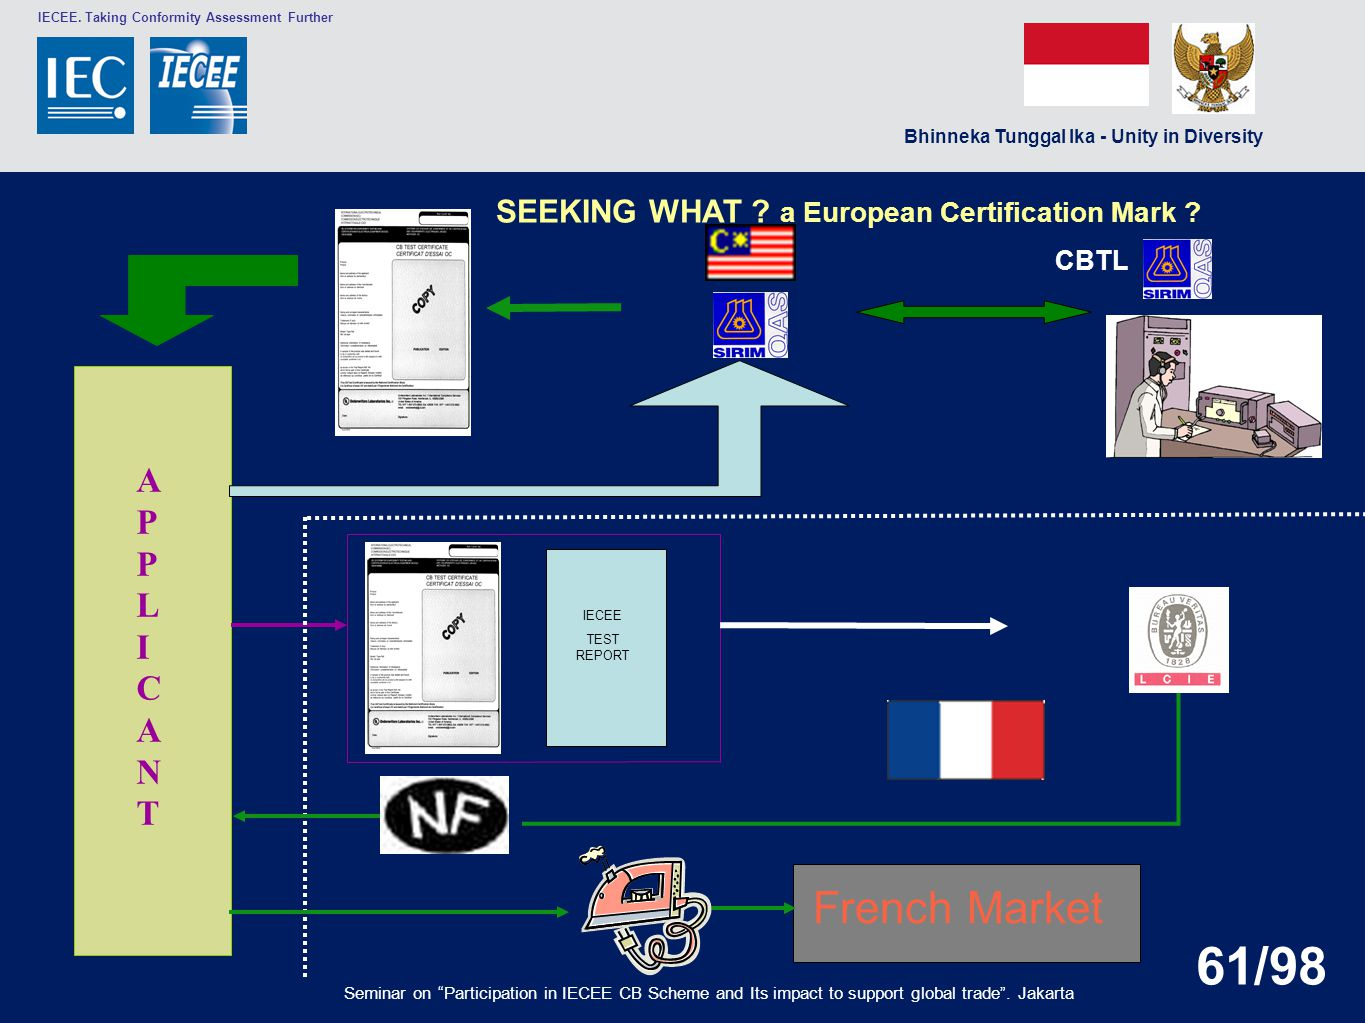 French Market APPLICANT SEEKING WHAT a European Certification Mark